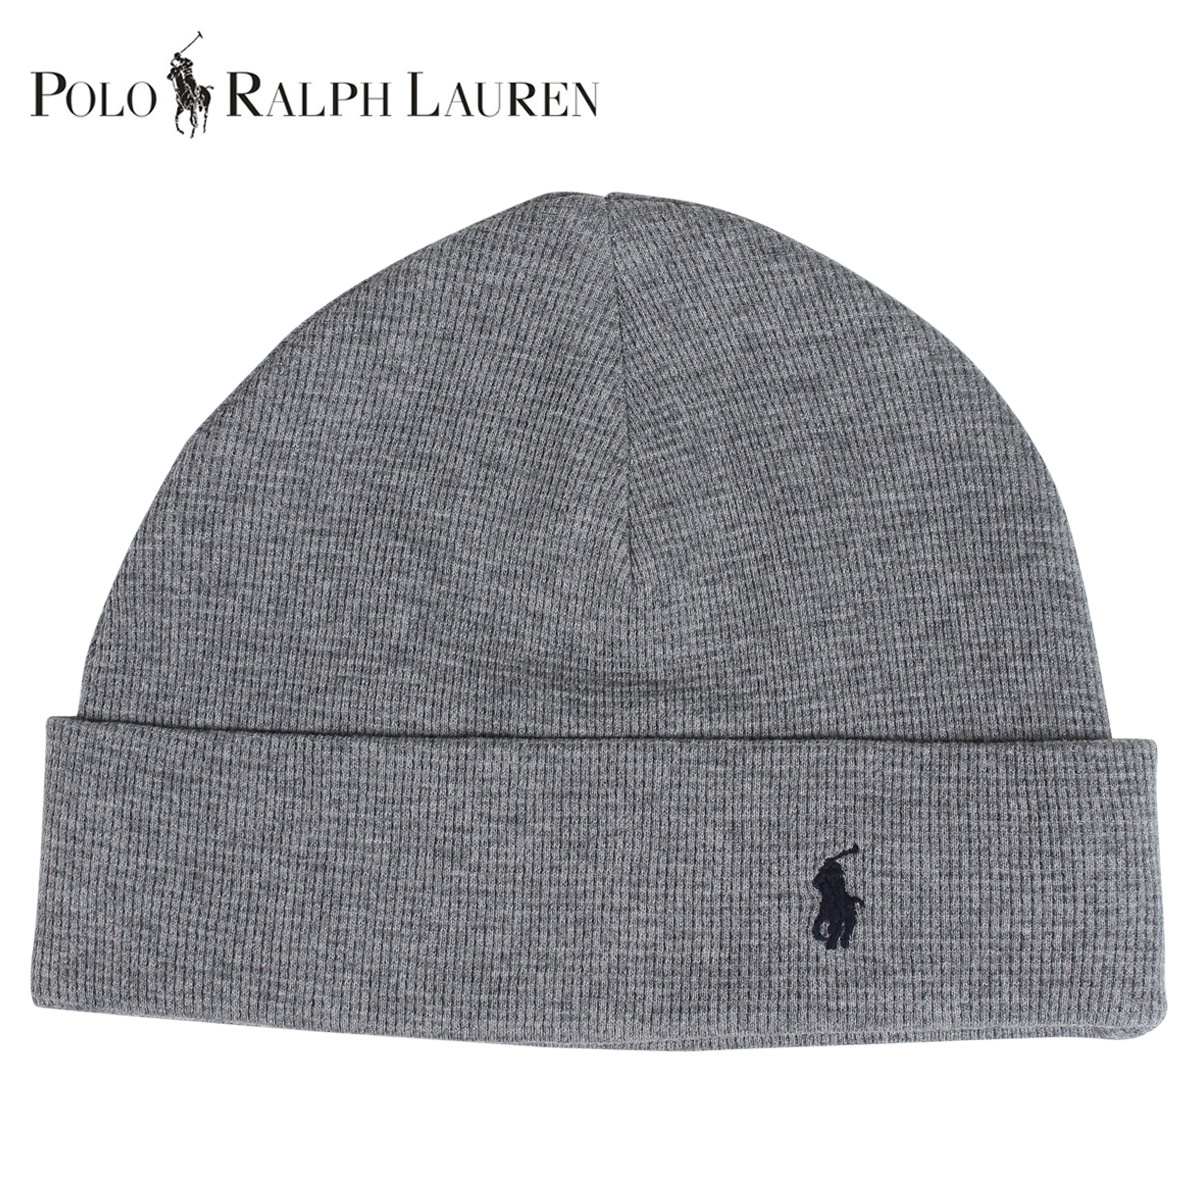 POLO RALPH LAUREN polo Ralph Lauren knit hat knit cap beanie men gap Dis  cotton WAFFLE KNIT COTTON HAT gray 6F0468 86fa79cf551